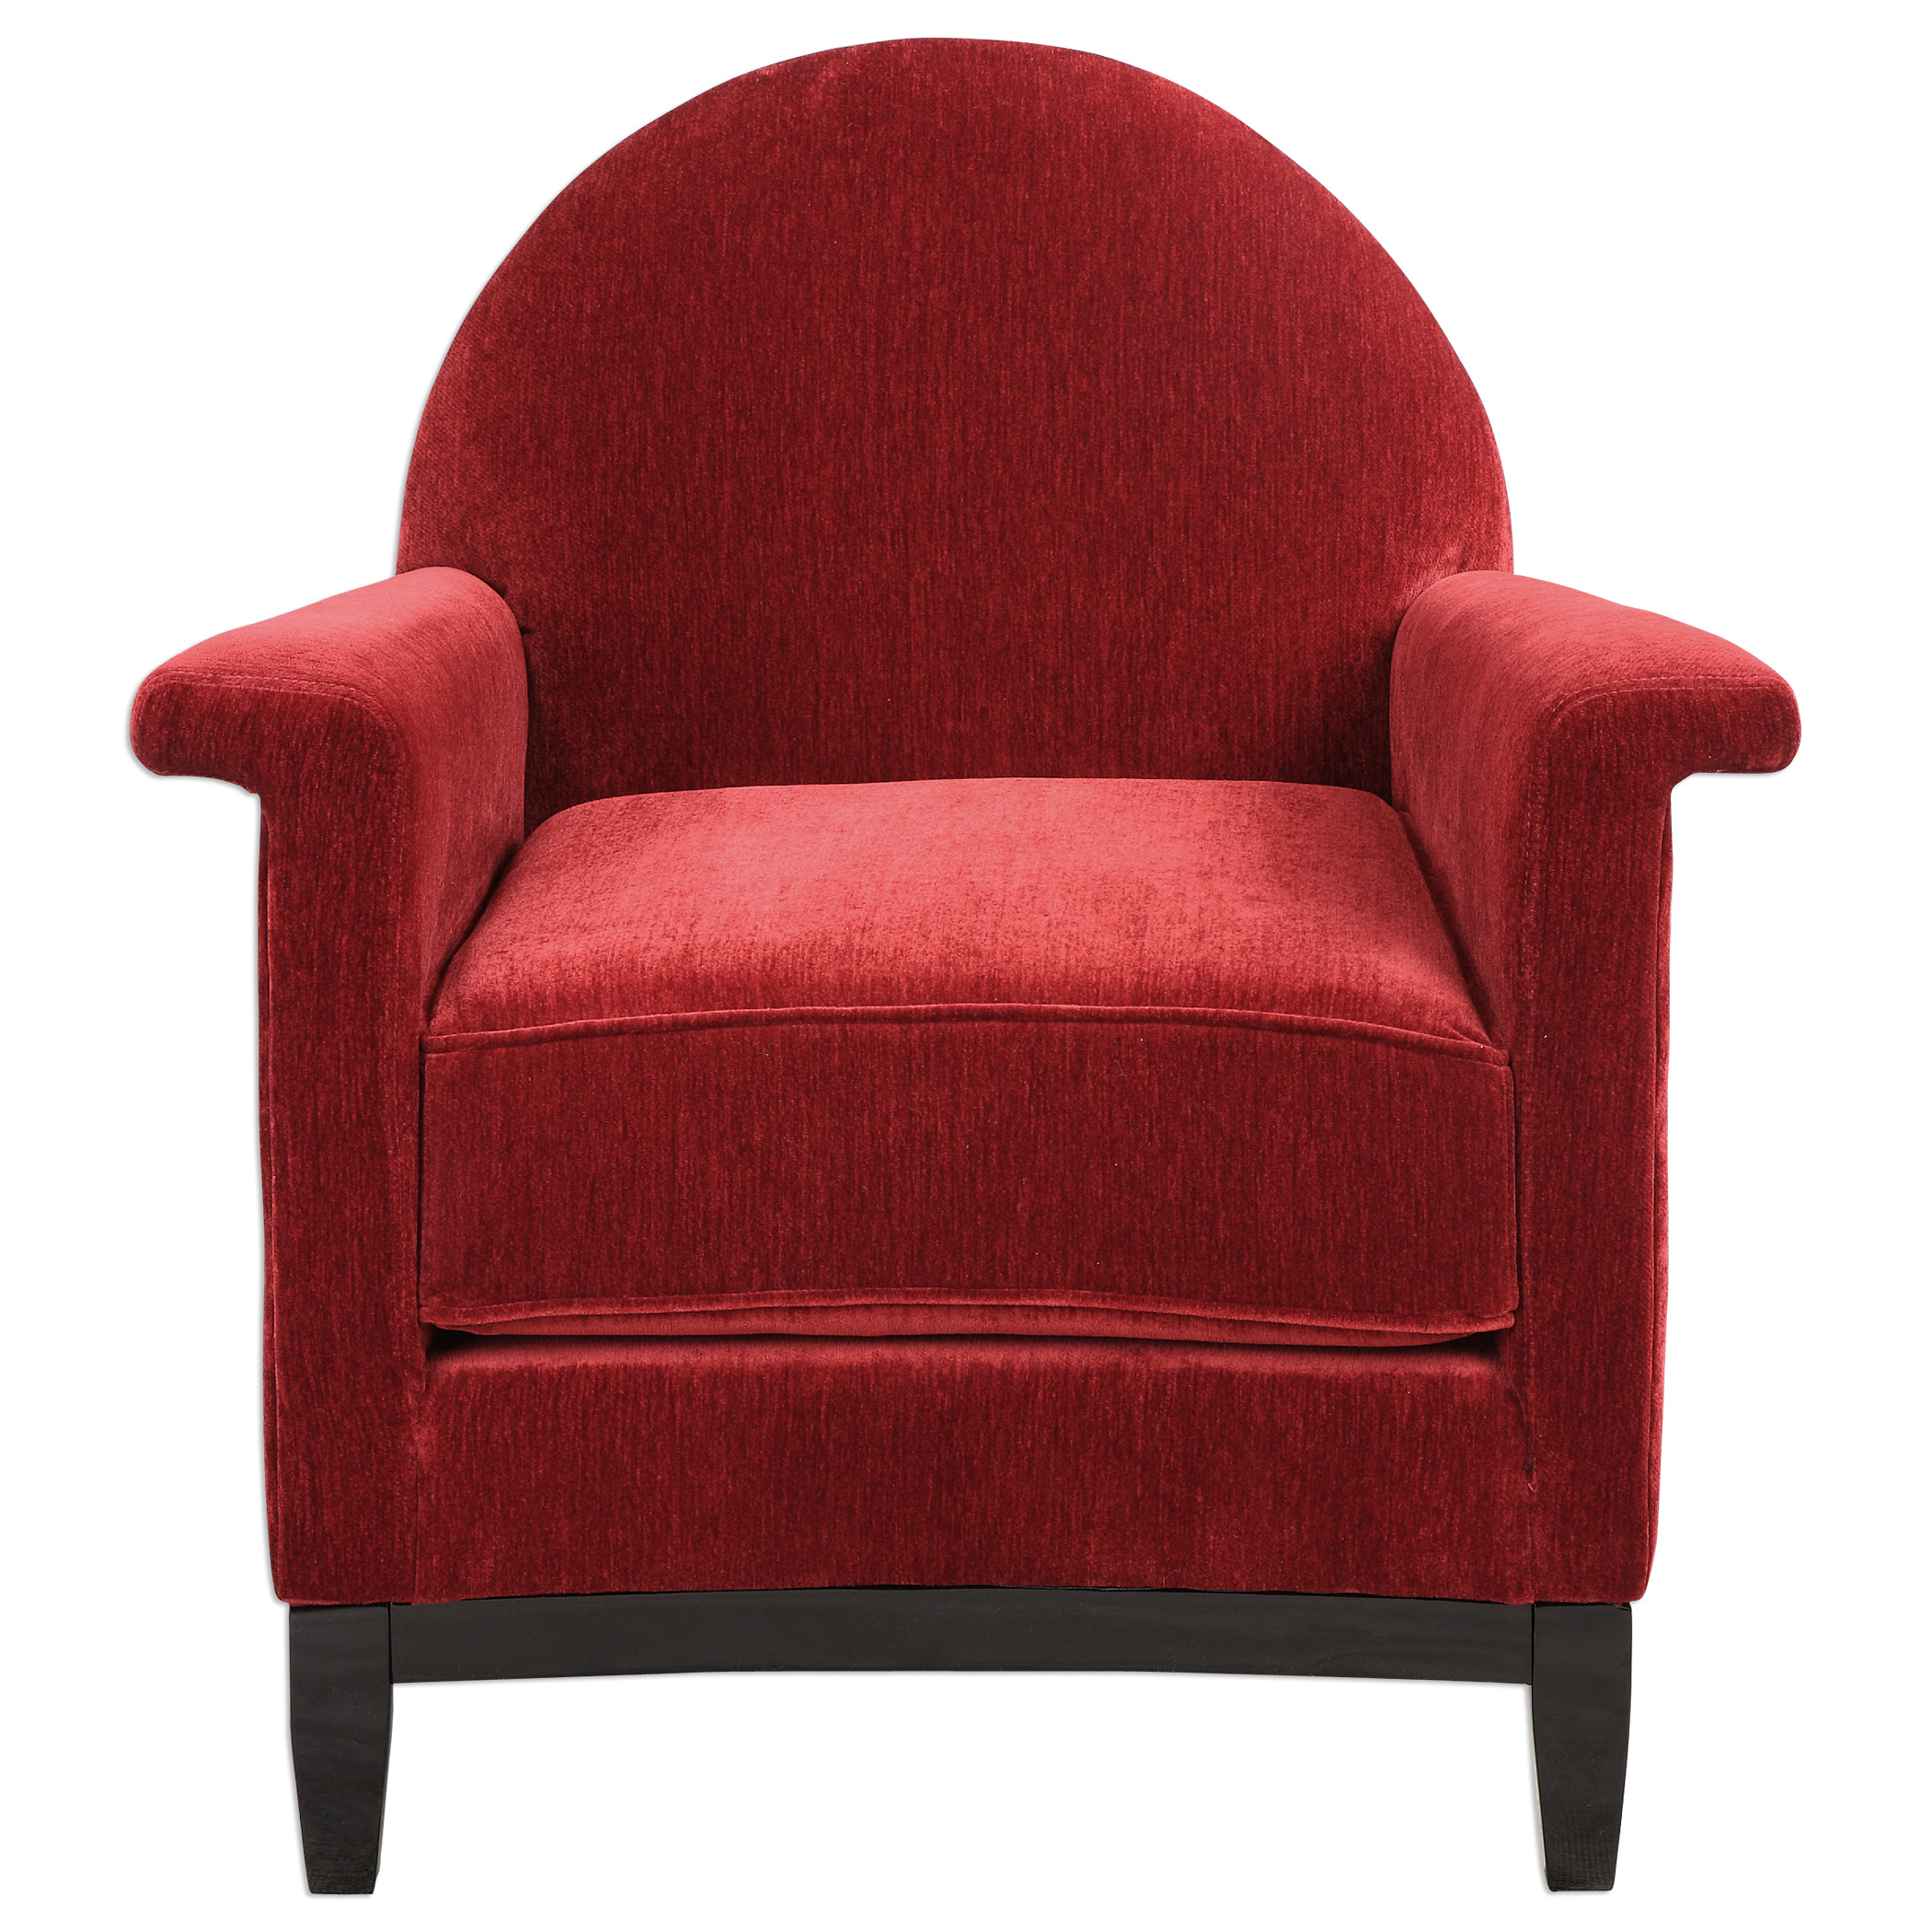 Uttermost Accent Furniture Sheelah Cherry Red Accent Chair - Item Number: 23299